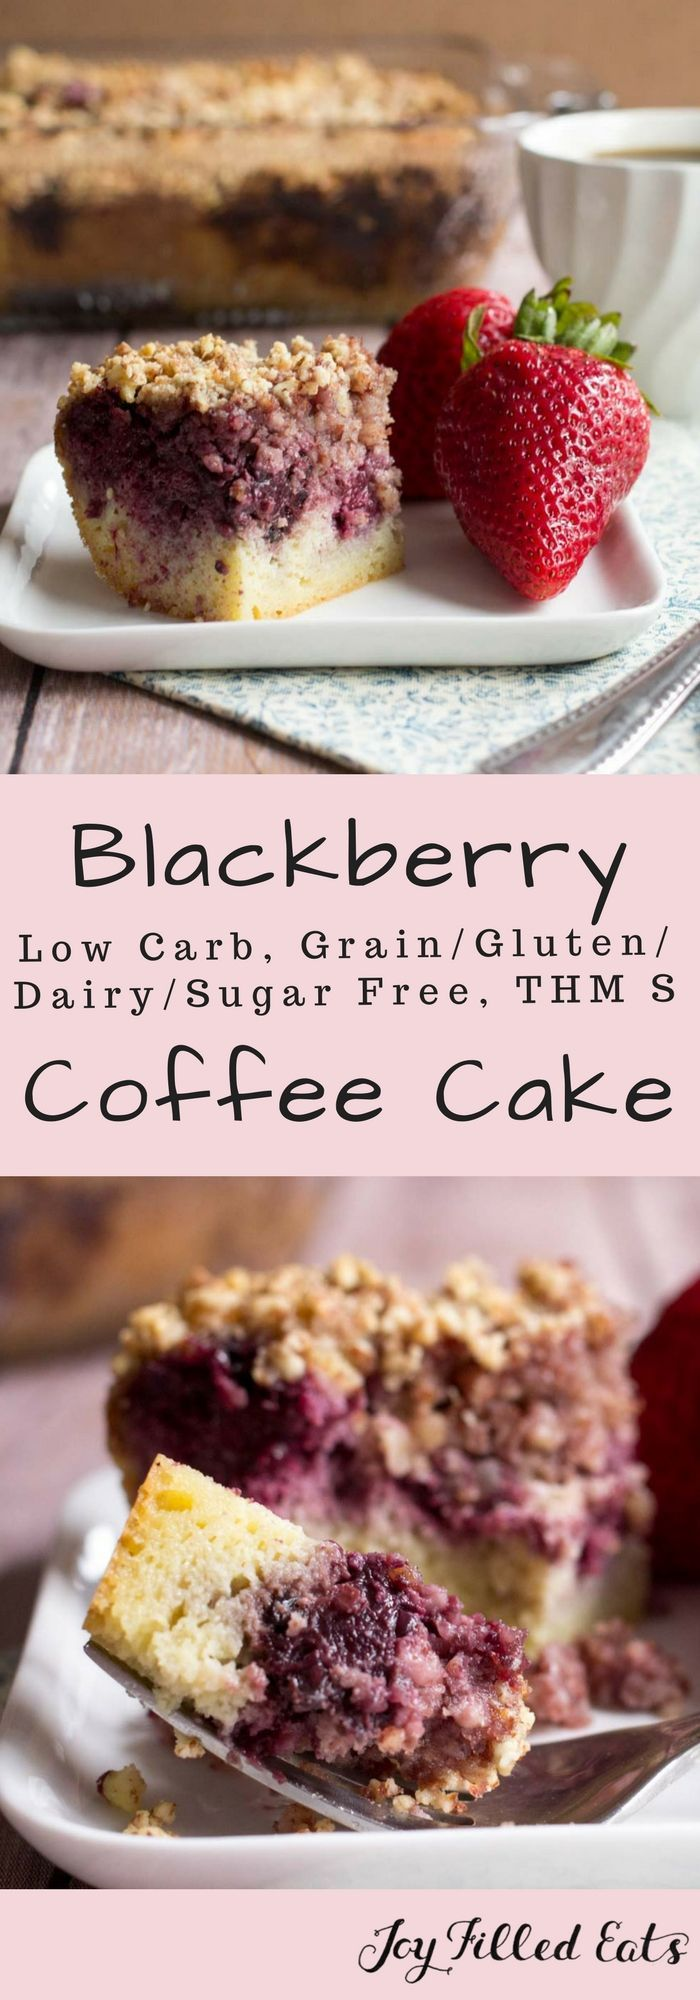 Coffee Cake - Low Carb, Grain, Gluten, Dairy, & Sugar Free, THM S - This Blackberry Coffee Cake is my new fave breakfast. It is moist & flavorful with a crunchy almond topping. It pairs nicely with berries & a cup of coffee. via @joyfilledeats